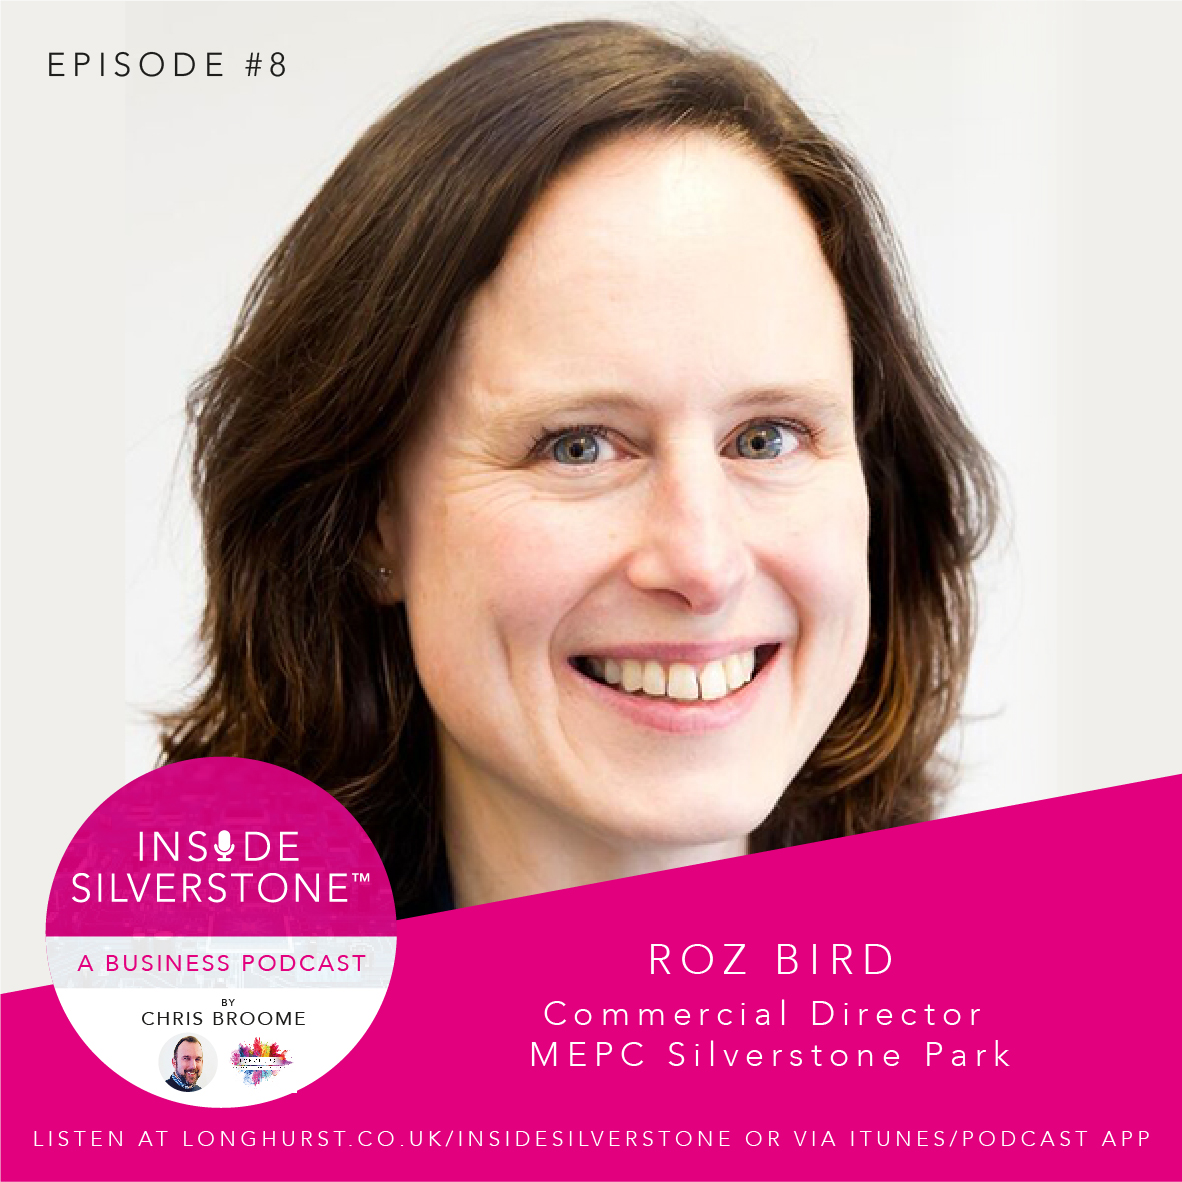 Roz Bird, Commercial Director of MEPC Silverstone Park, and Chair of the Silverstone Technology Cluster